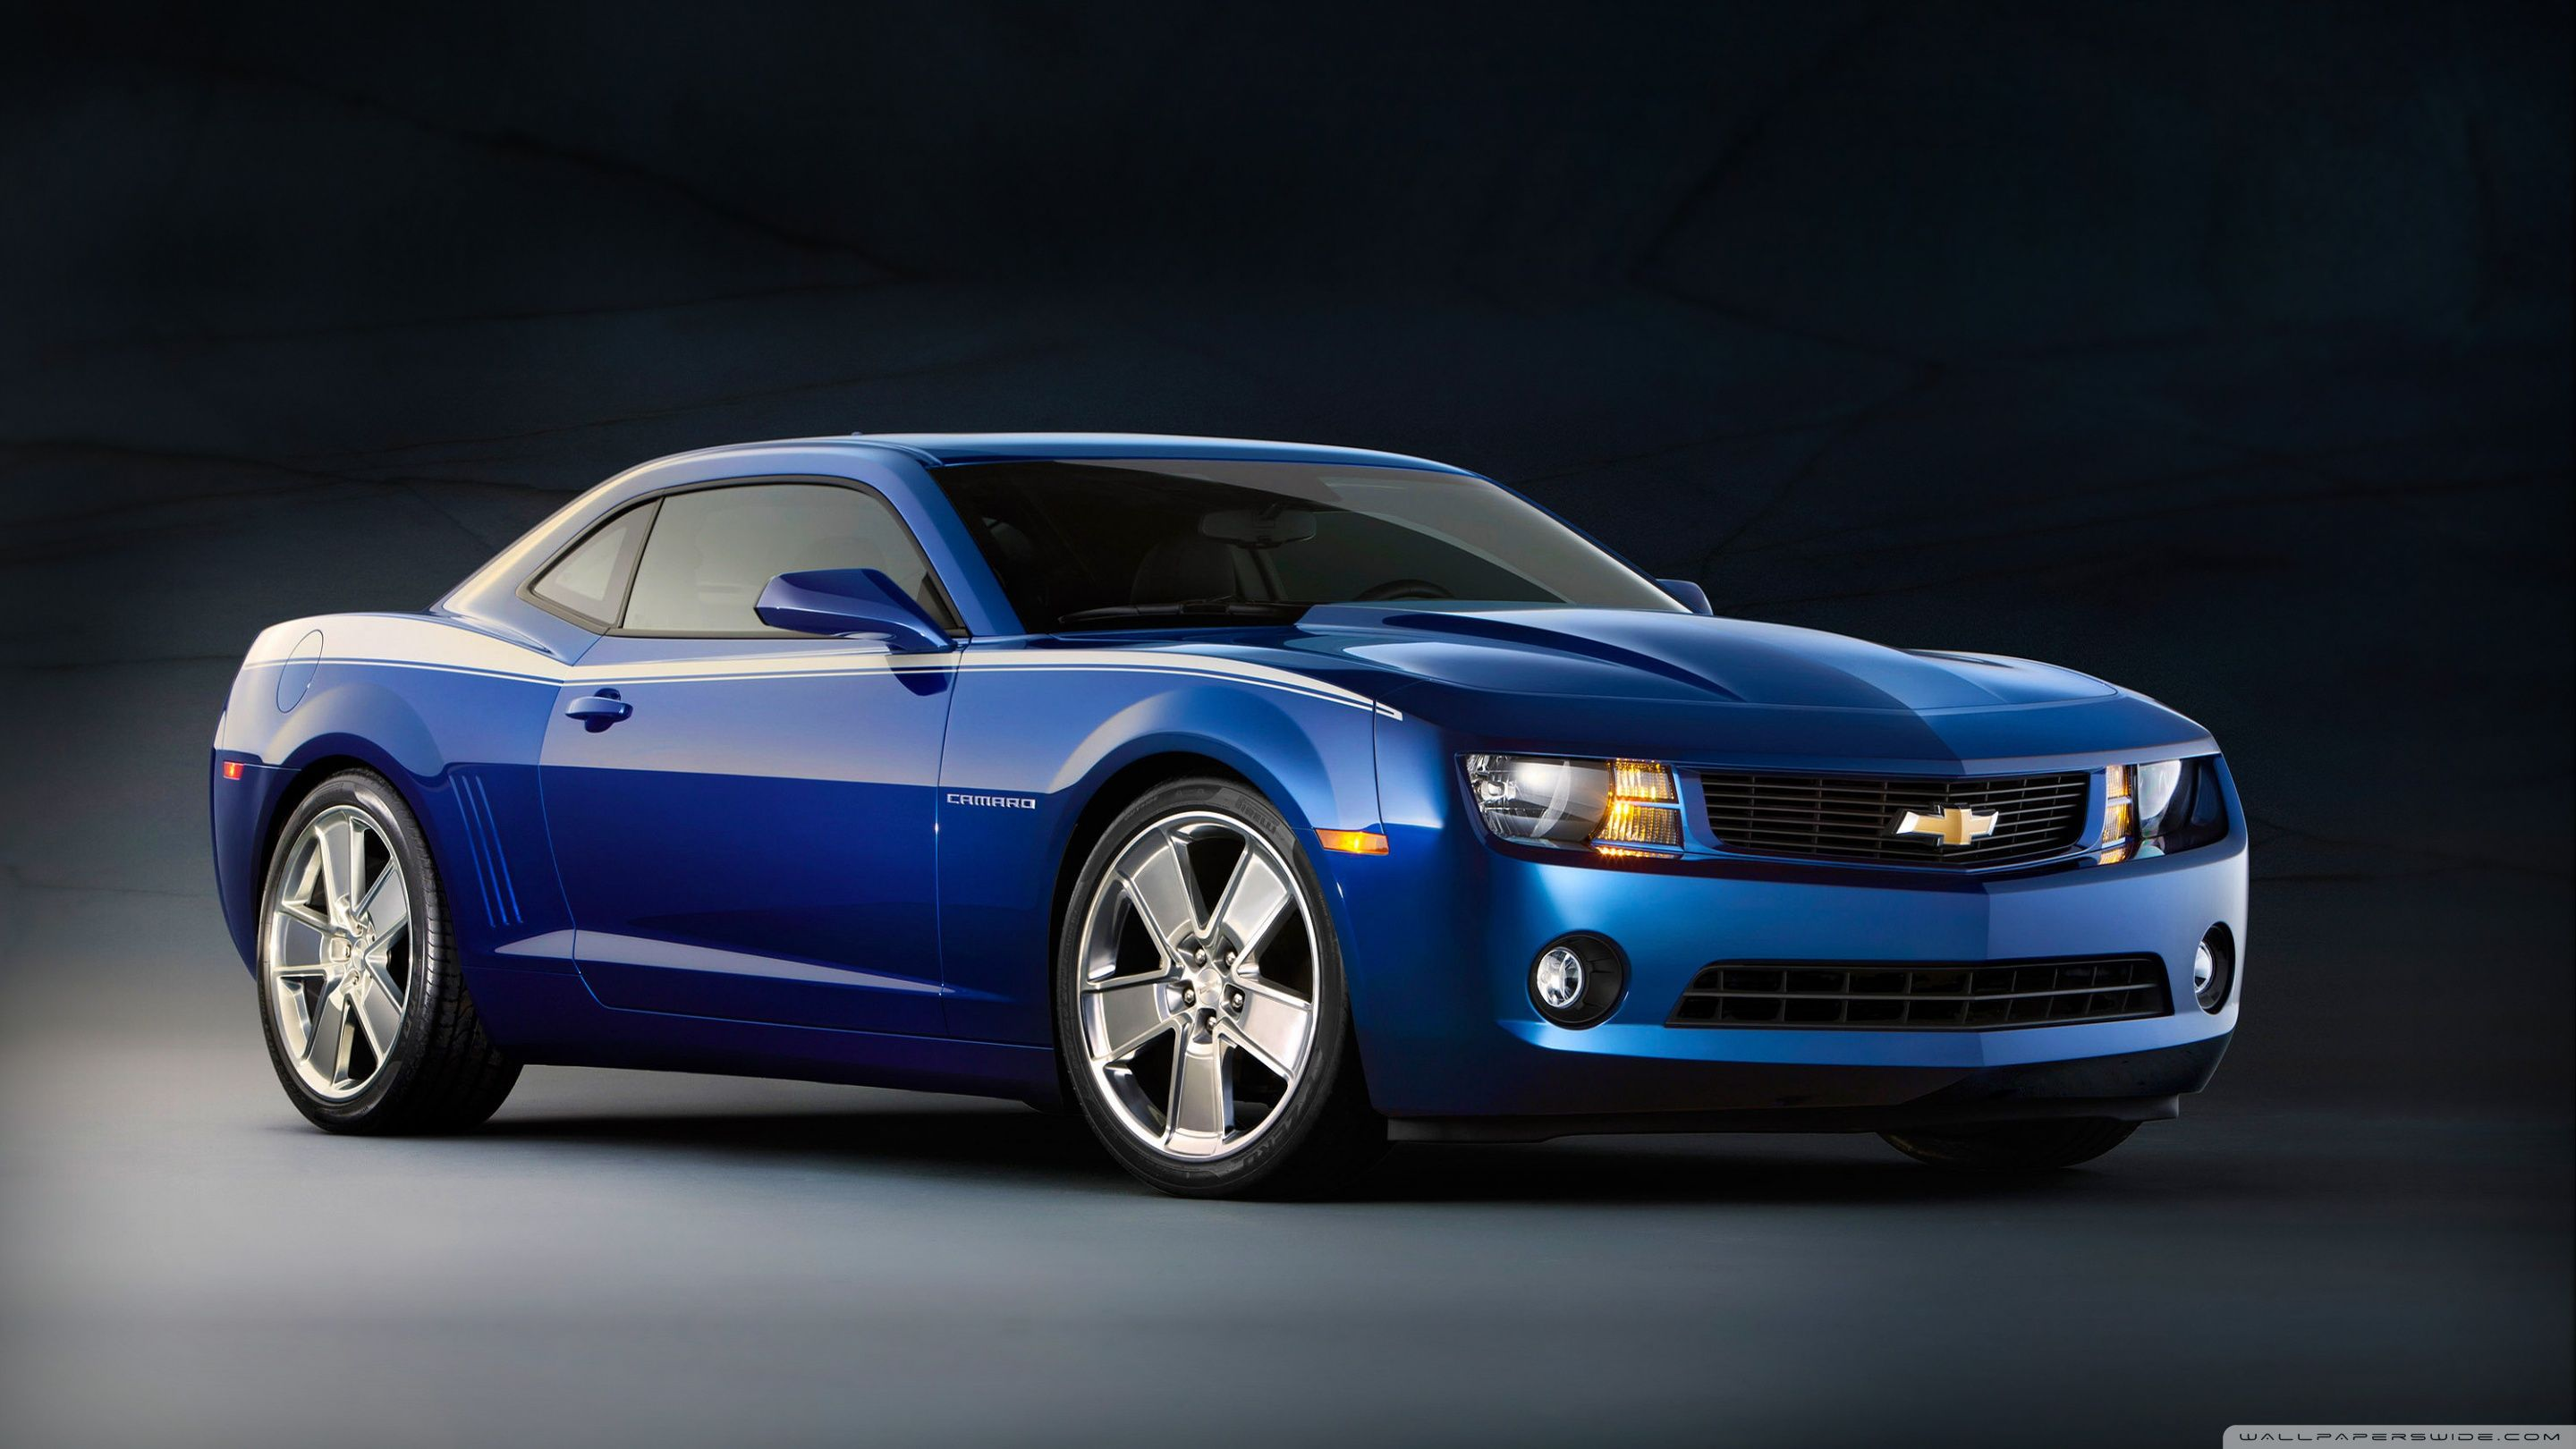 Blue Camaro Wallpapers Top Free Blue Camaro Backgrounds